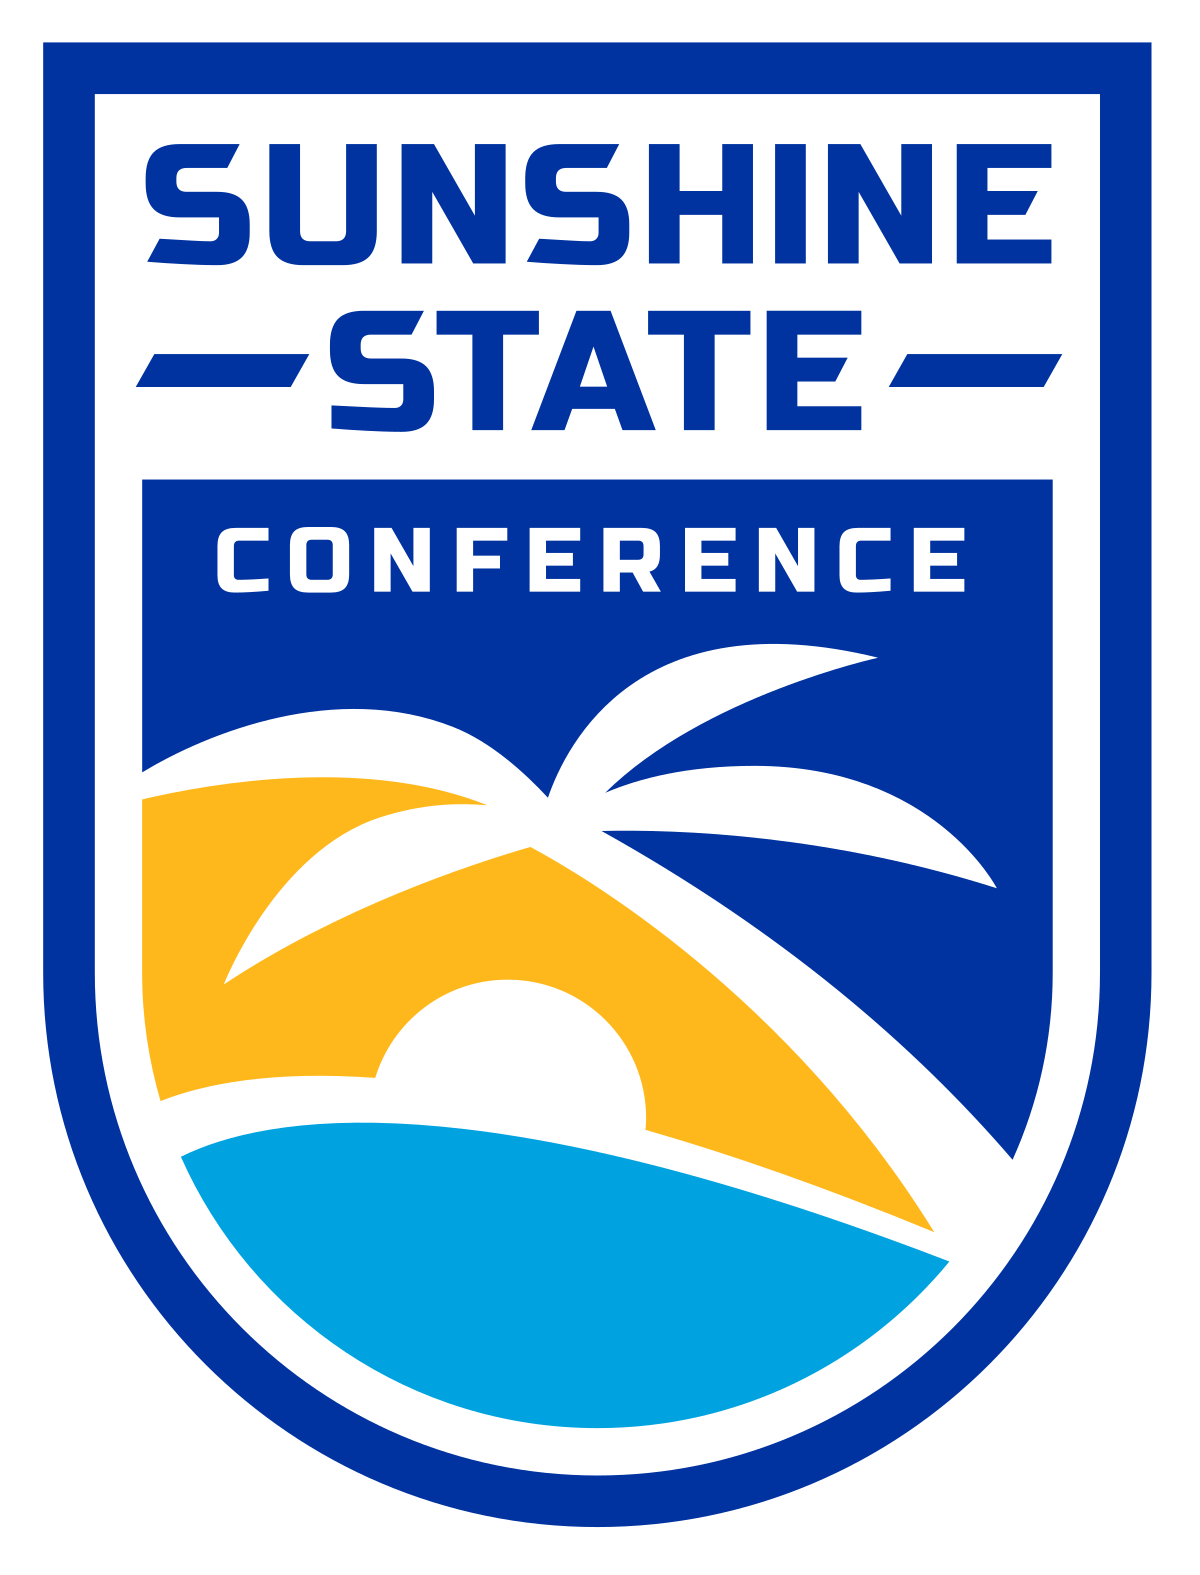 Sunshine_State_Conference_logo